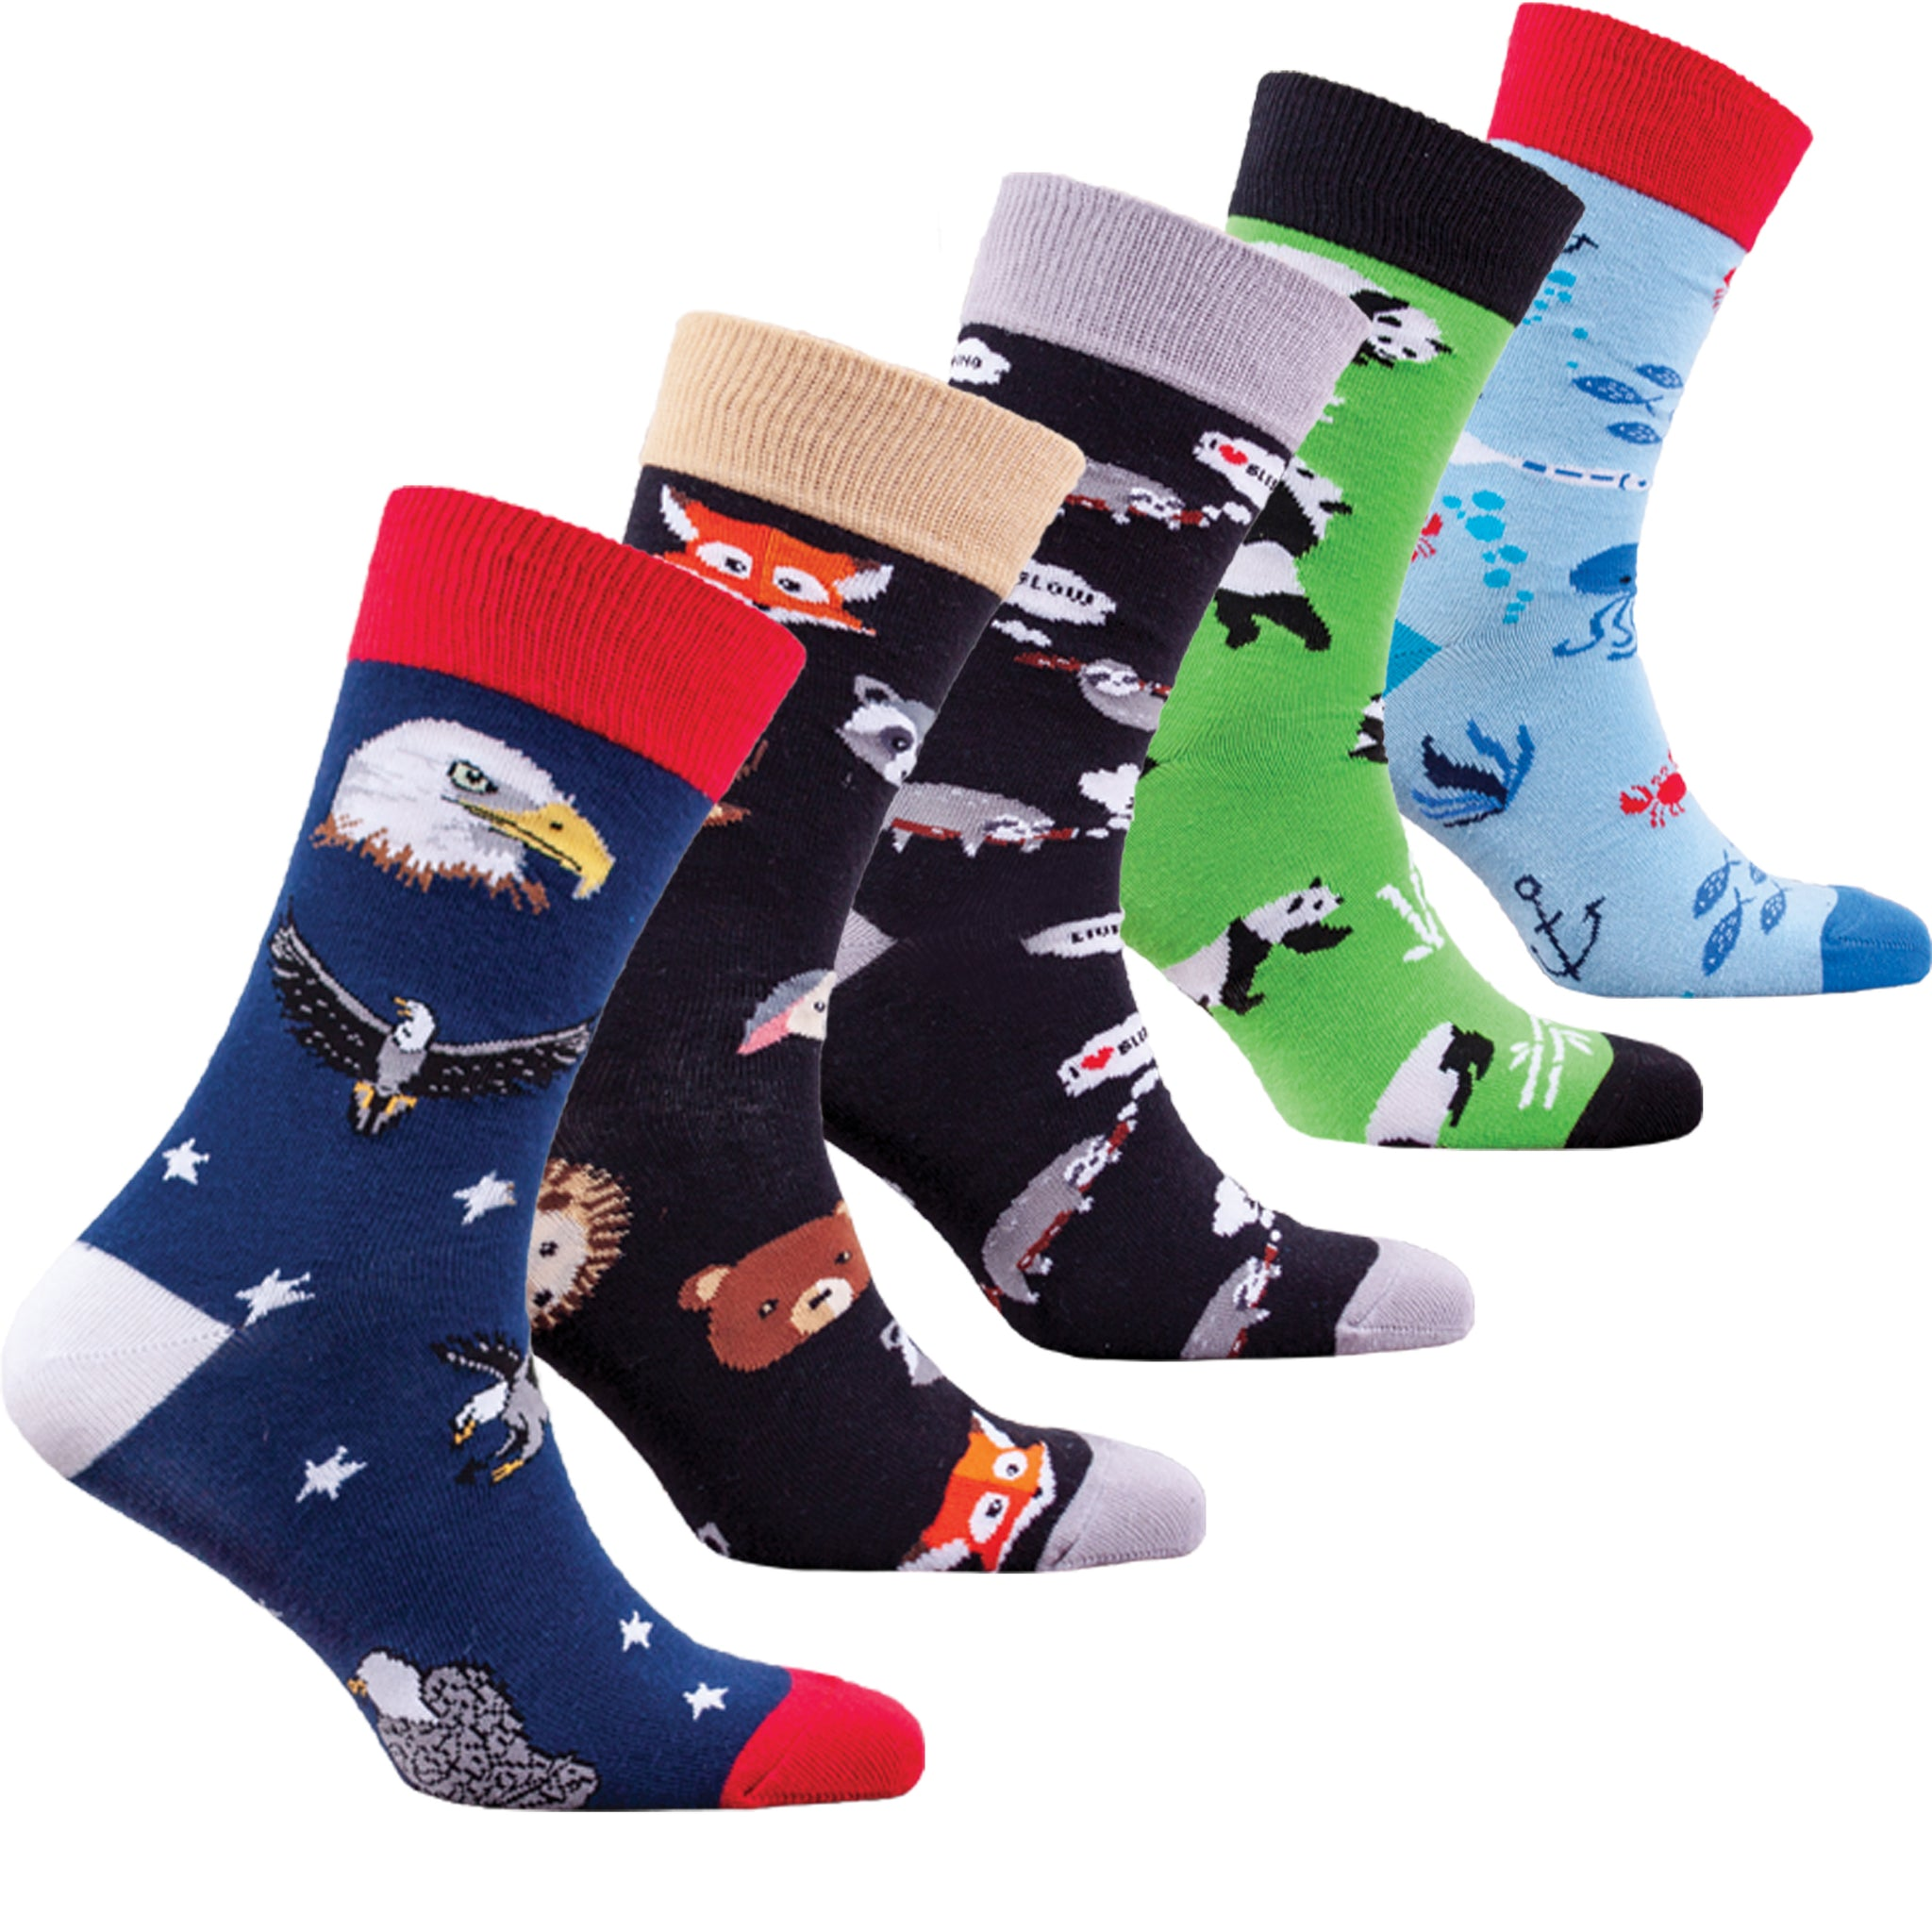 Men's Feral Animals Socks